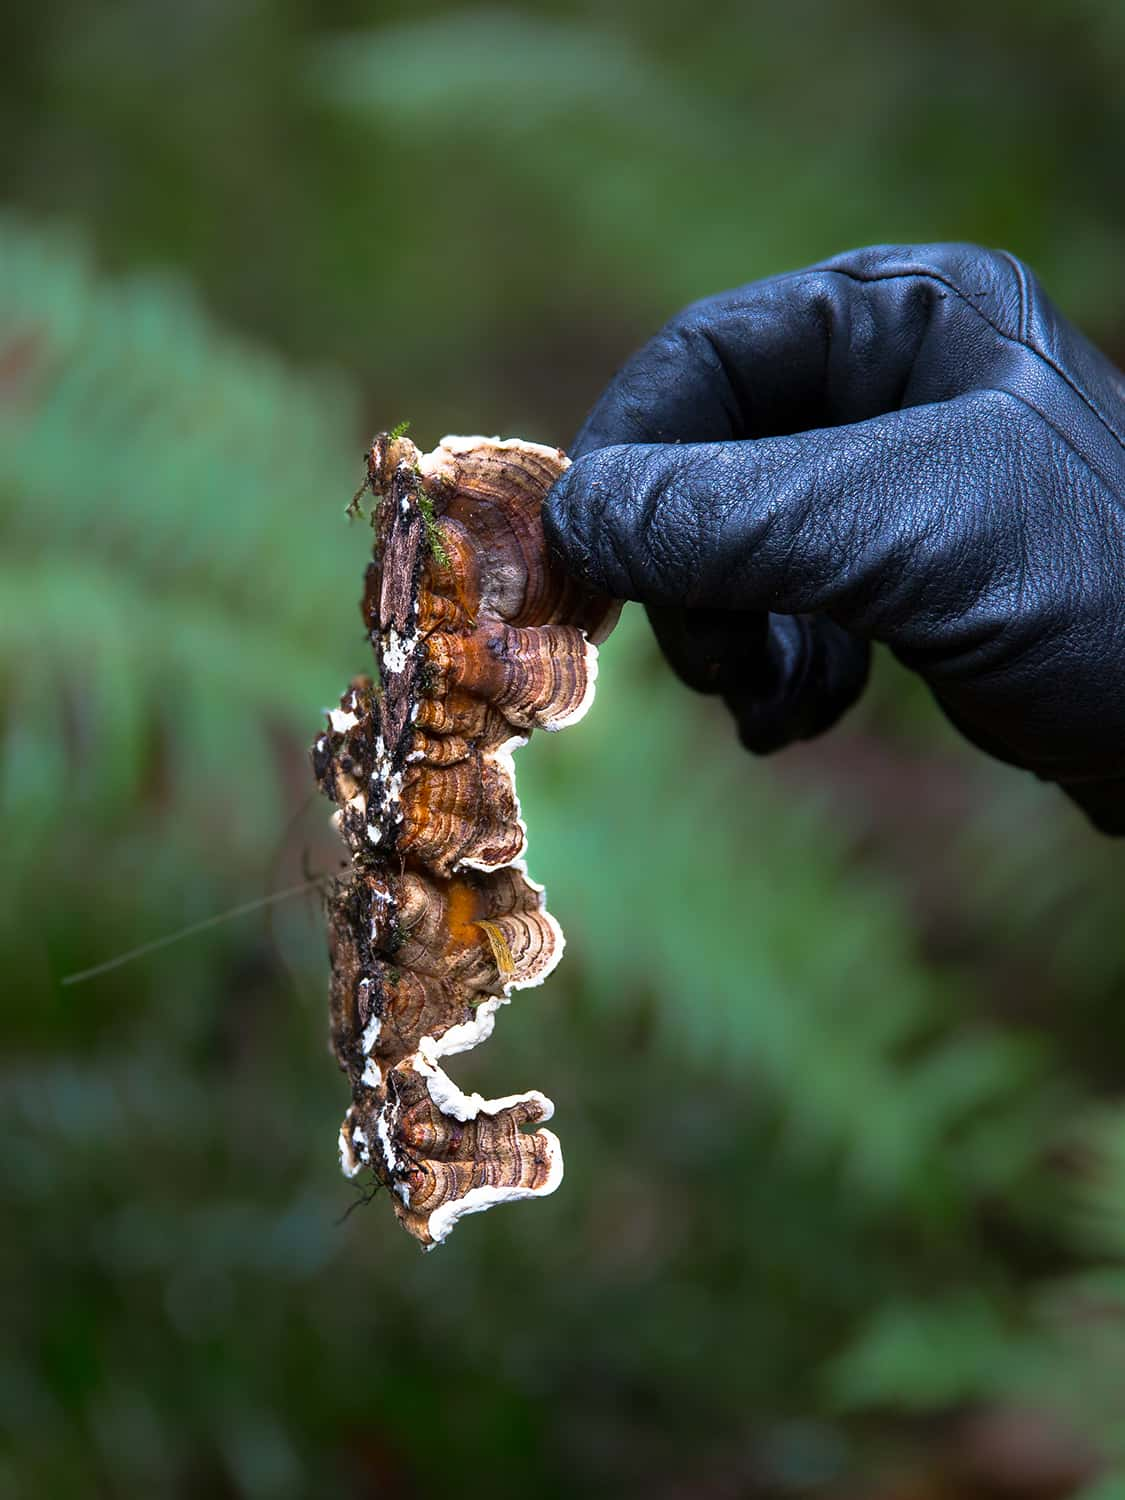 Portland wedding florist shows freshly harvested Turkey Tail mushroom picked from a dead log in Oregon forest